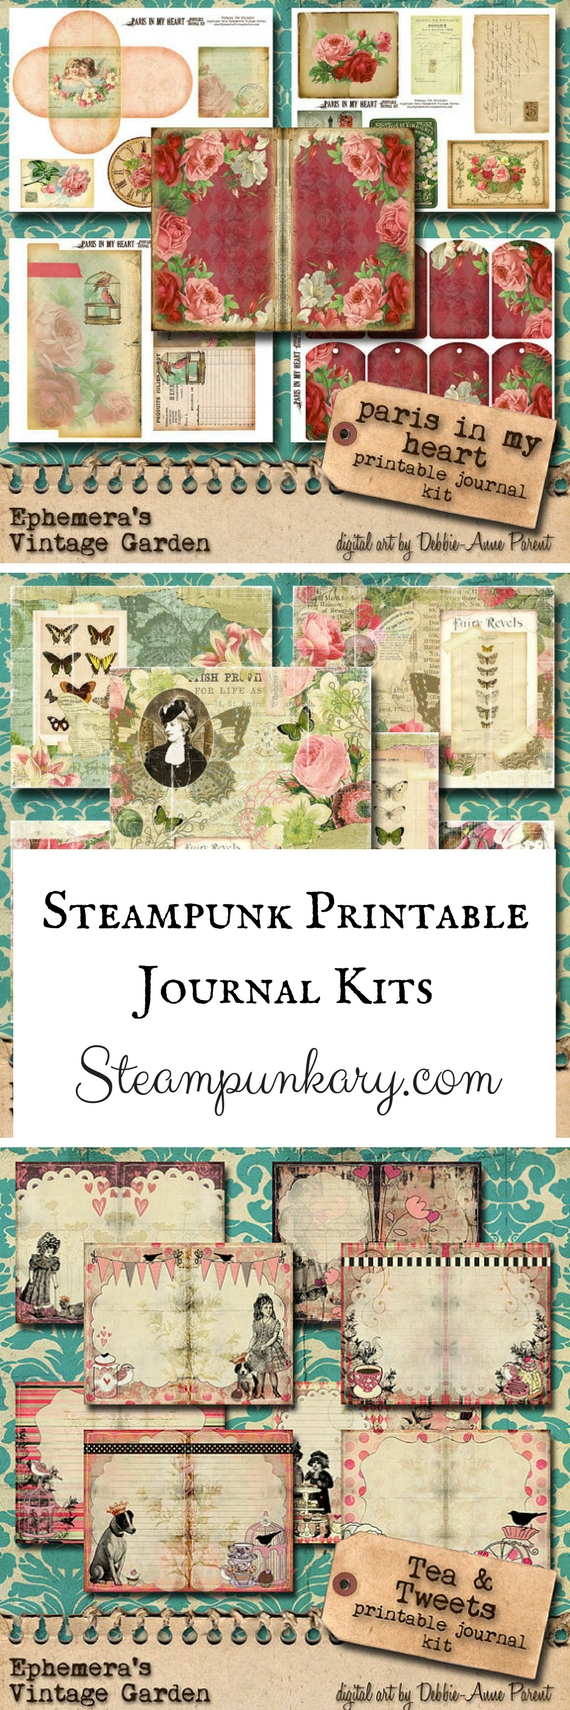 Printable Vintage & Steampunk Journal Kits